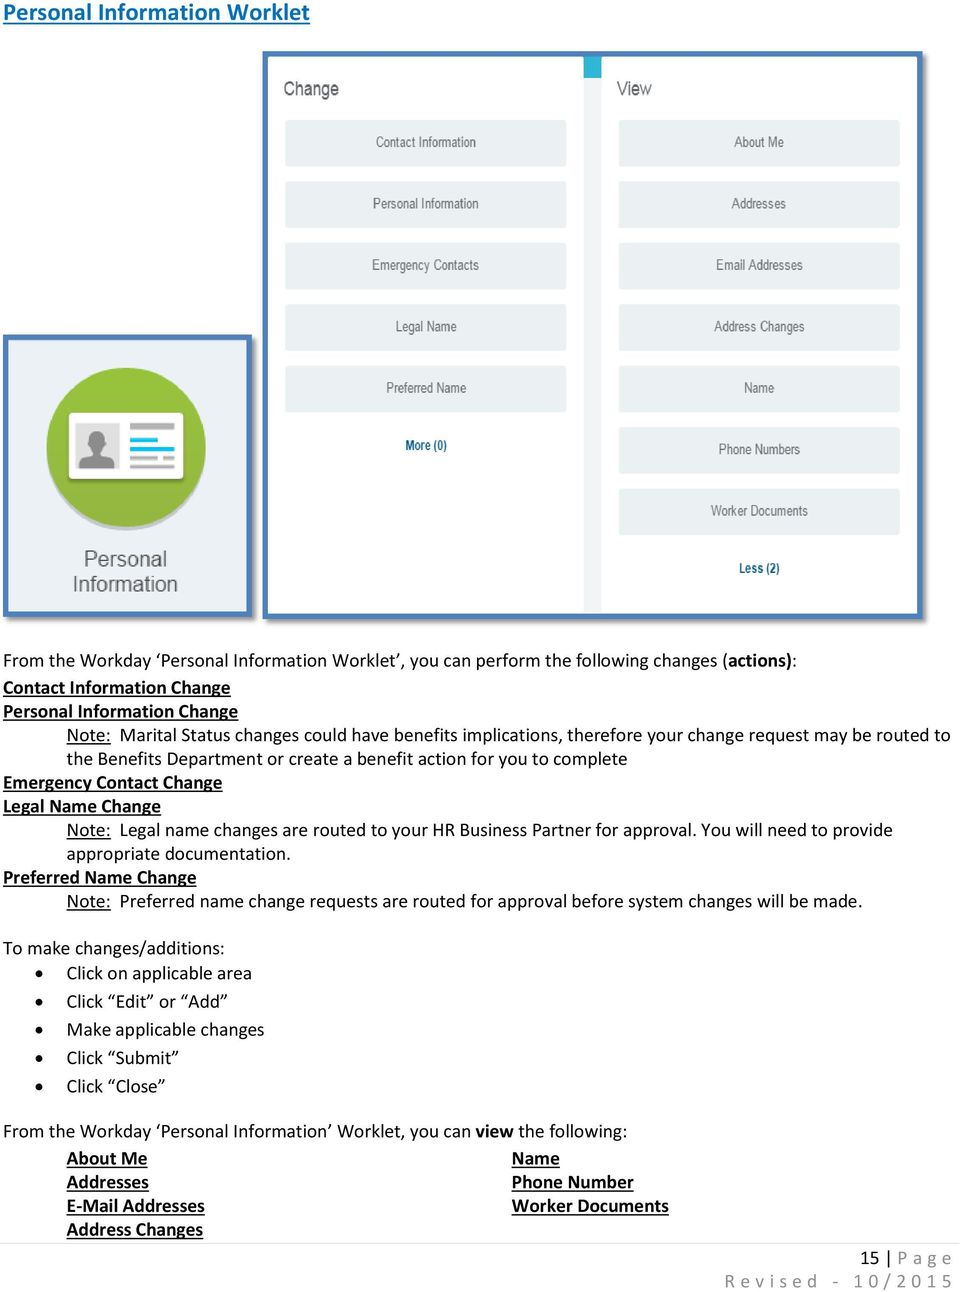 Workday Employee Self Service User Guide - PDF